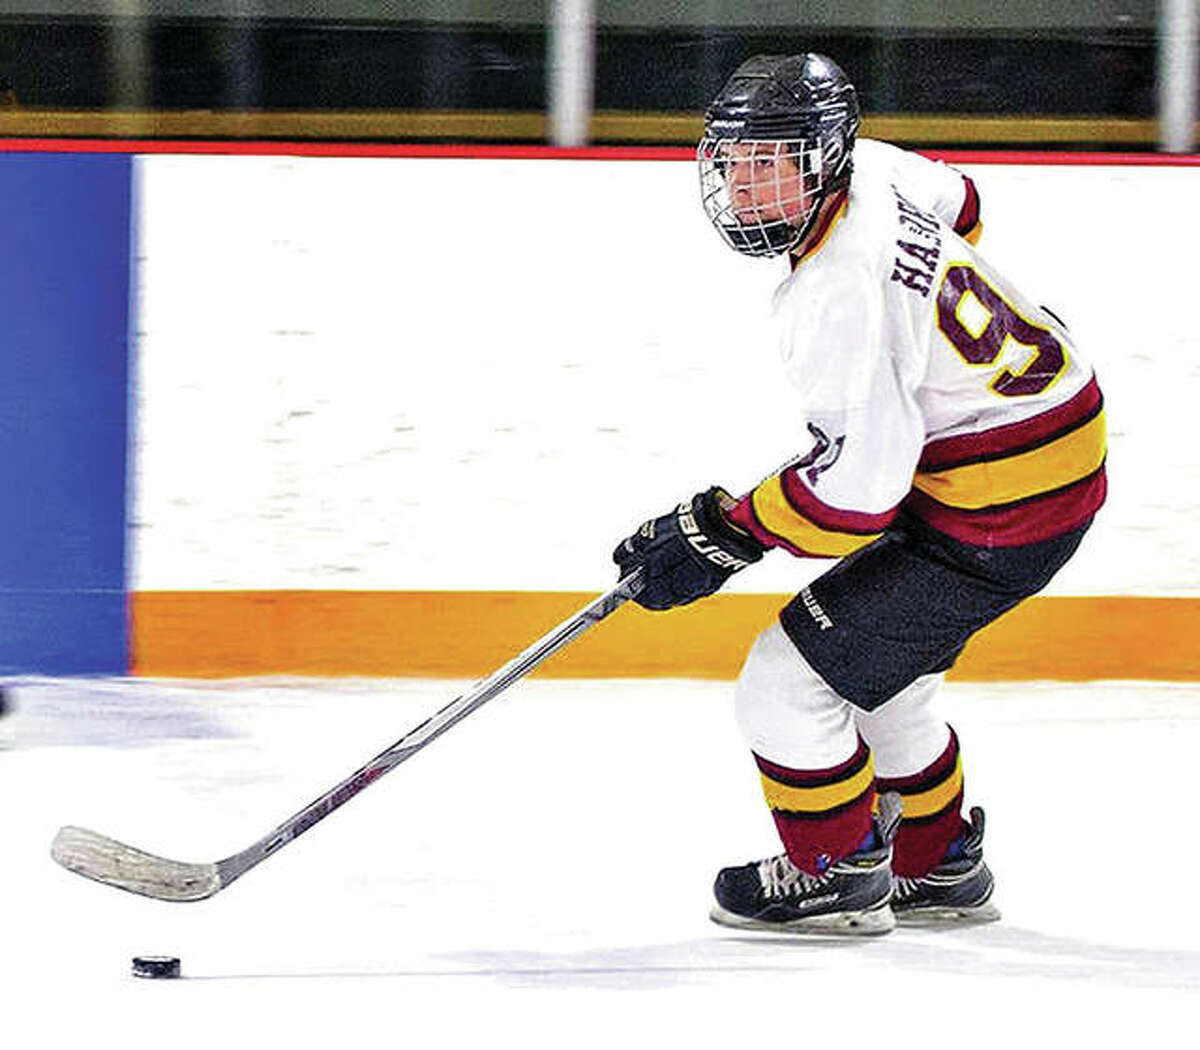 EA-WR's Kaleb Harrop will lead his team into a quarterfinal-round series against Triad in the Class 1A MVCHA playoffs, set to begin Wednesday at the east Alton Ice Arena. Harrop led the Oilers with 39 goals in the regular season.